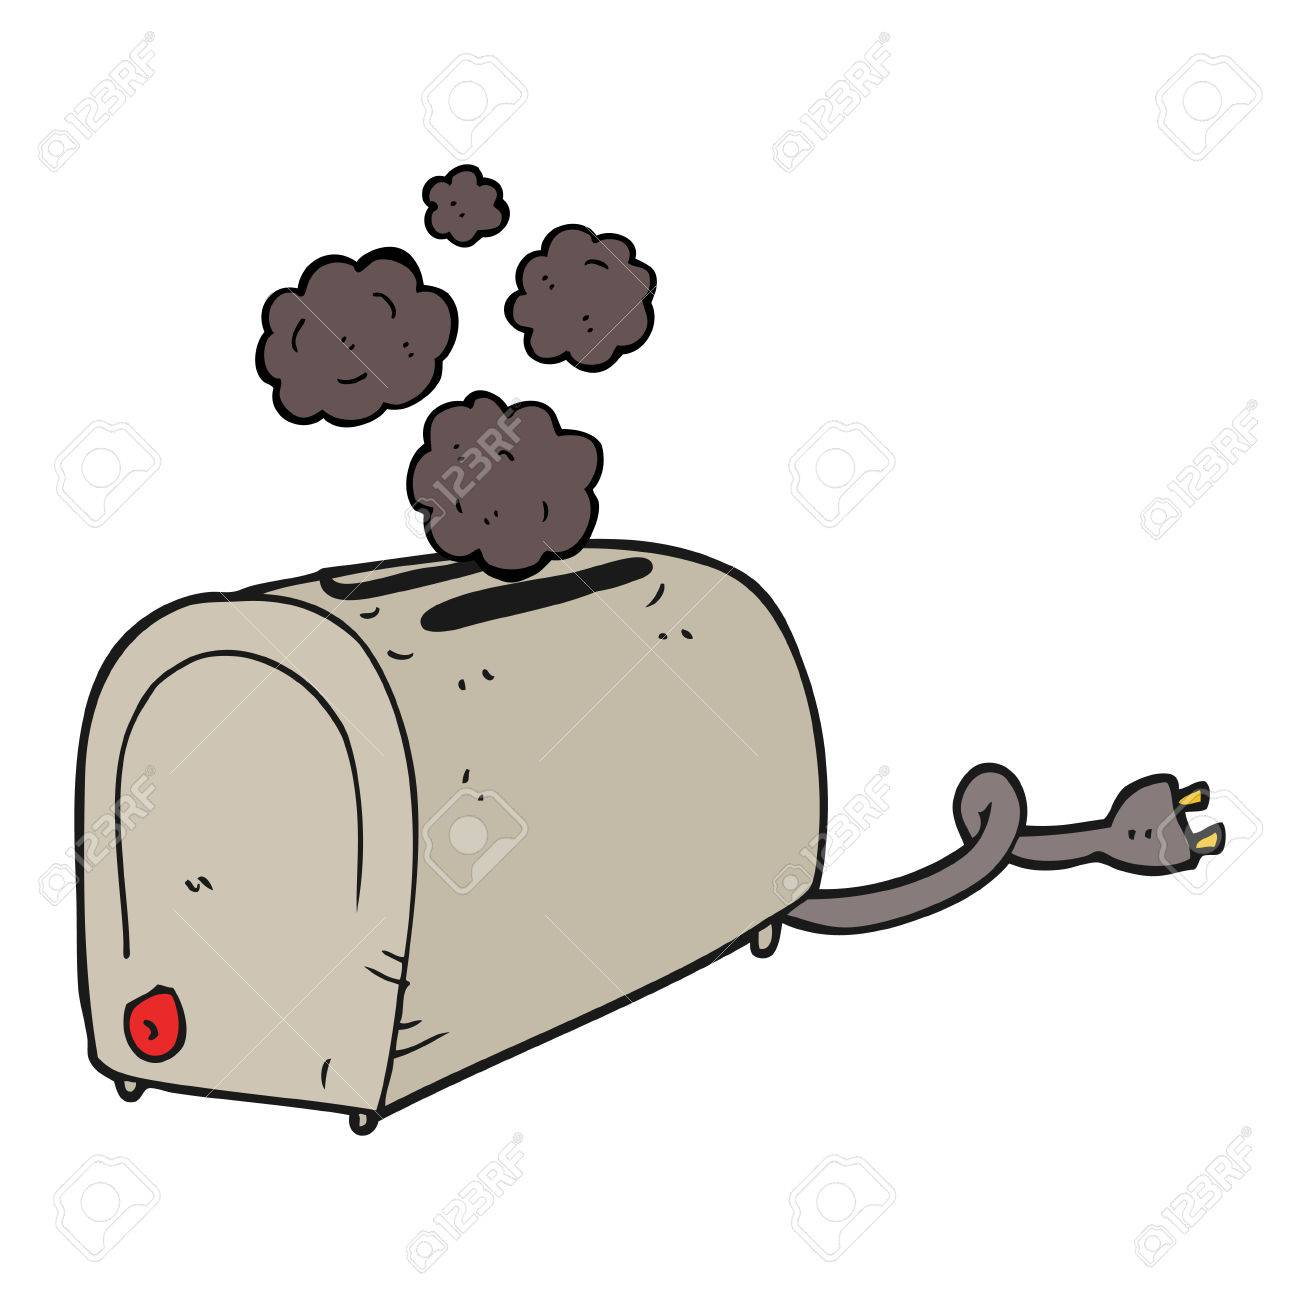 Toaster vector clip art   Free vector image in AI and EPS format, Creative  Commons license.